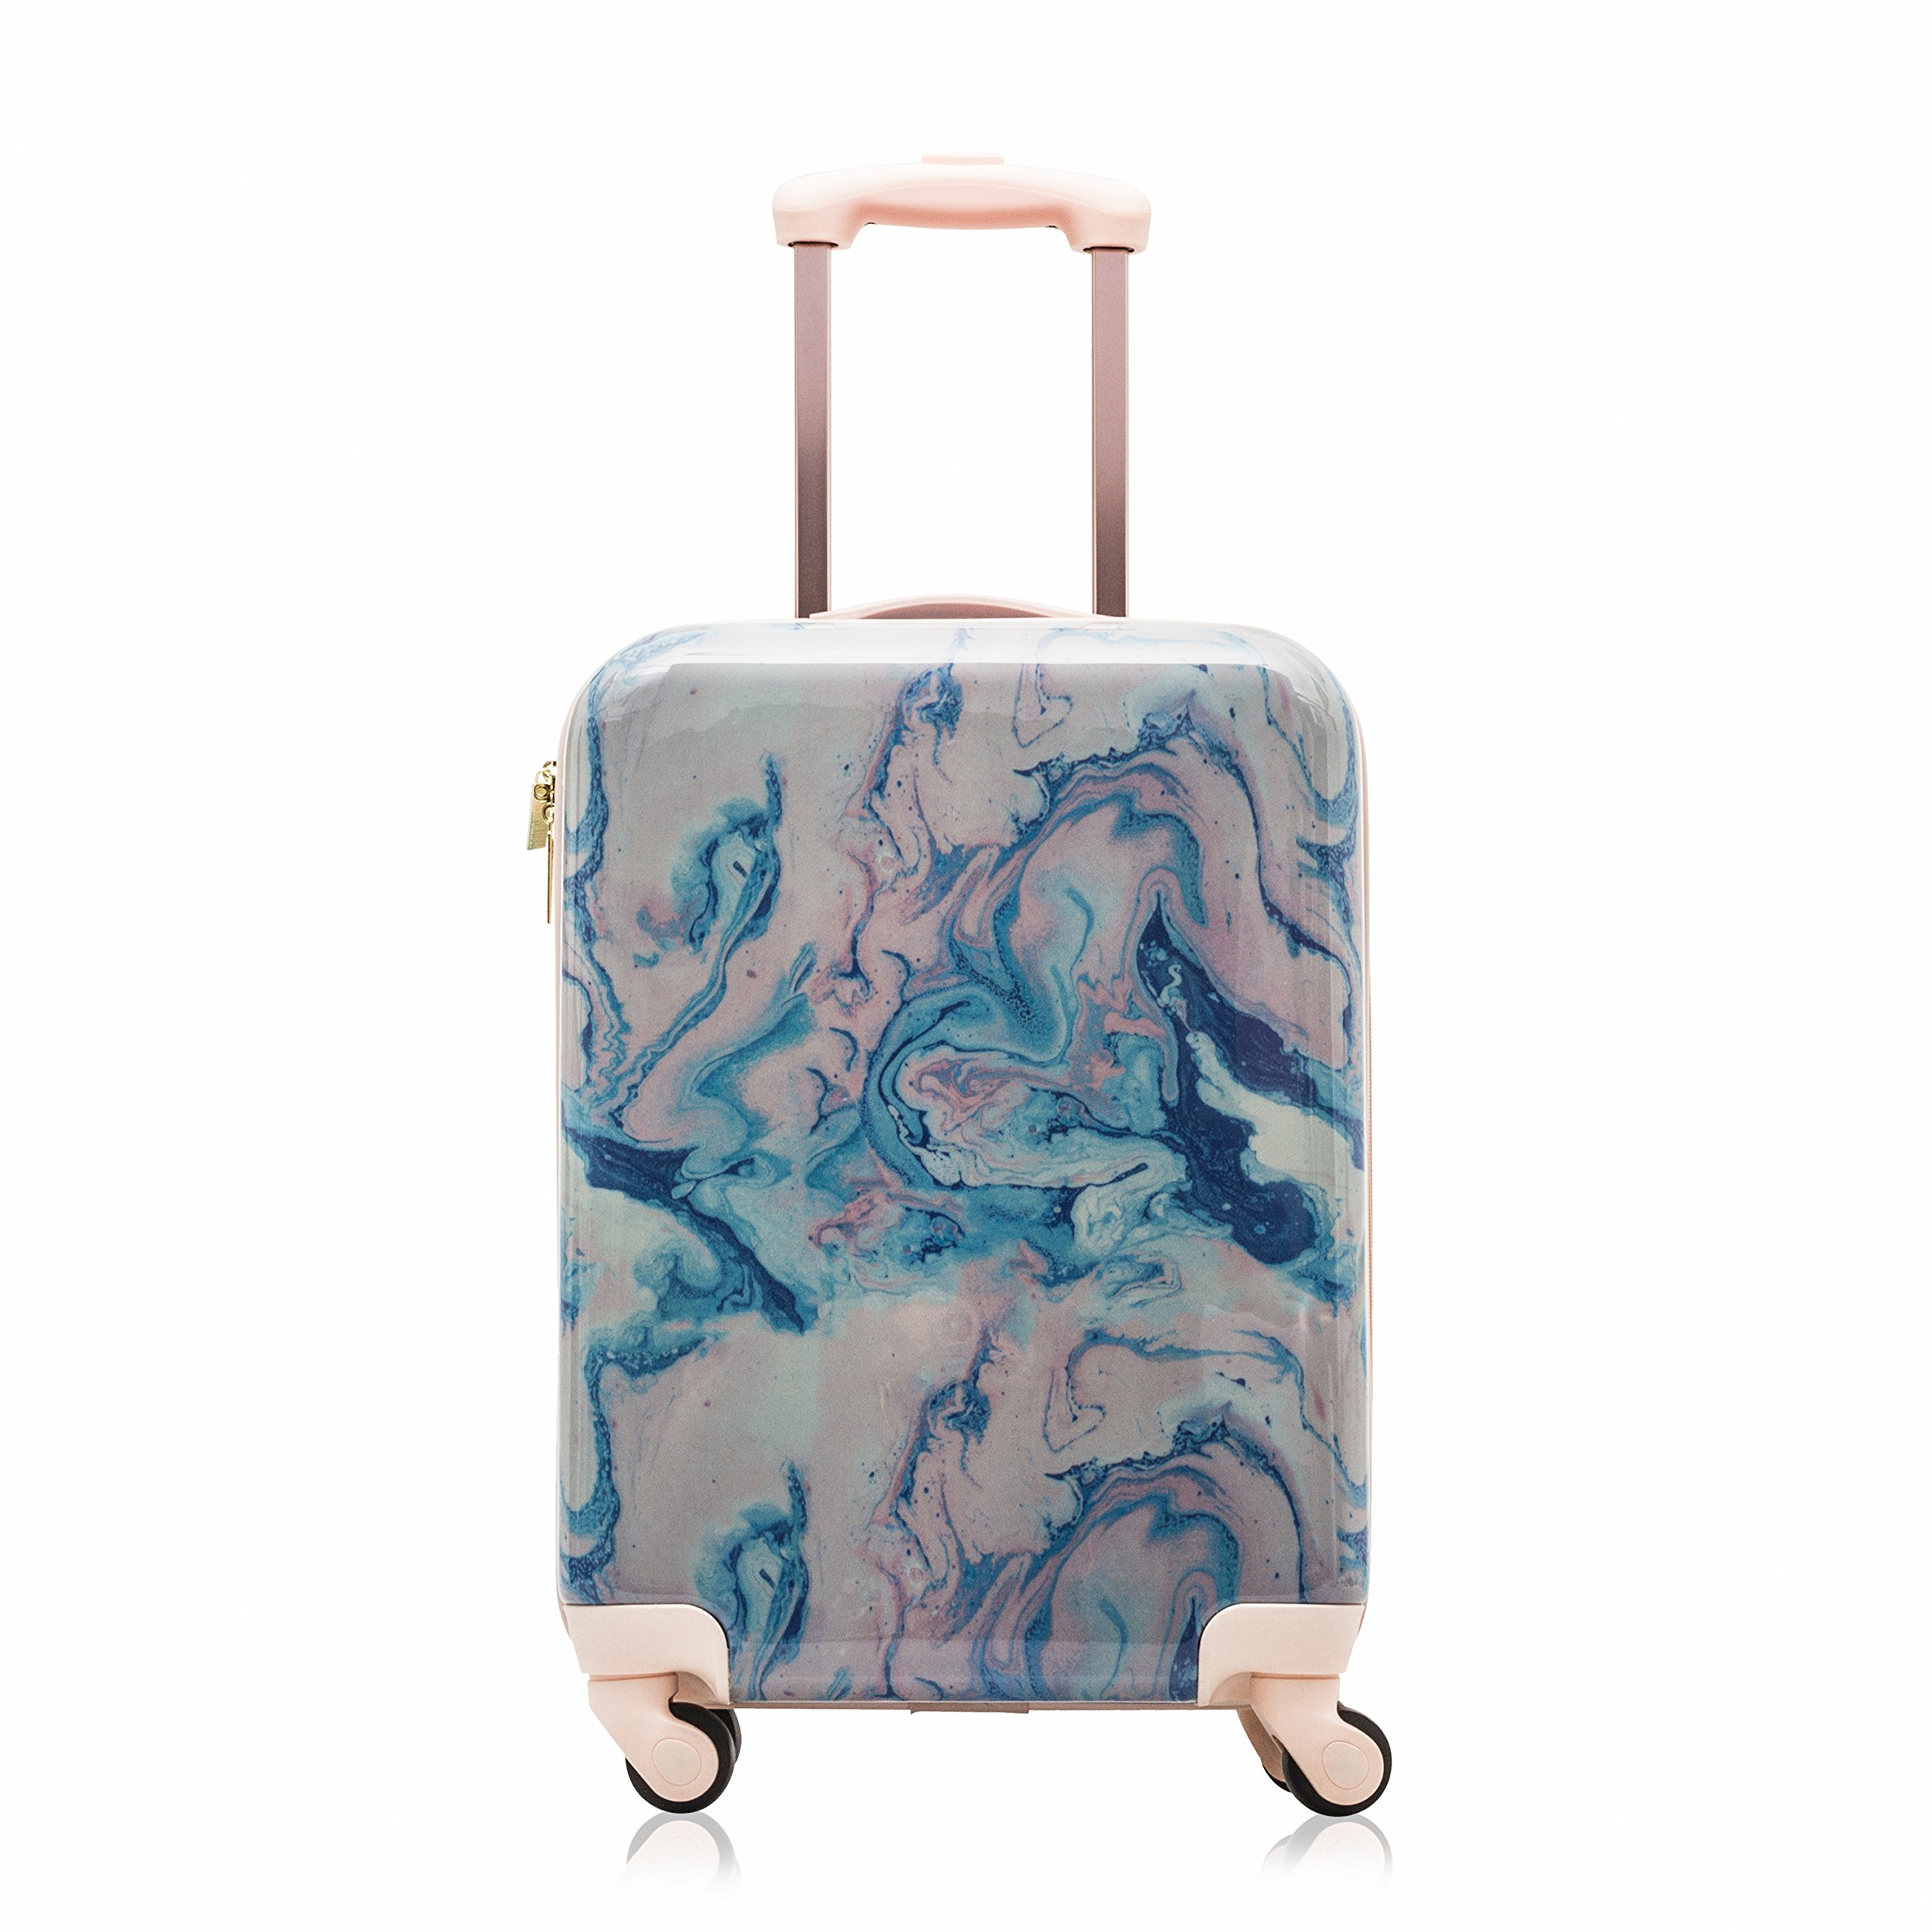 Cosmopolitan Fashion 21''(with Wheels) Flight Legal Hardcase Carry-on Suitcase (Pink)